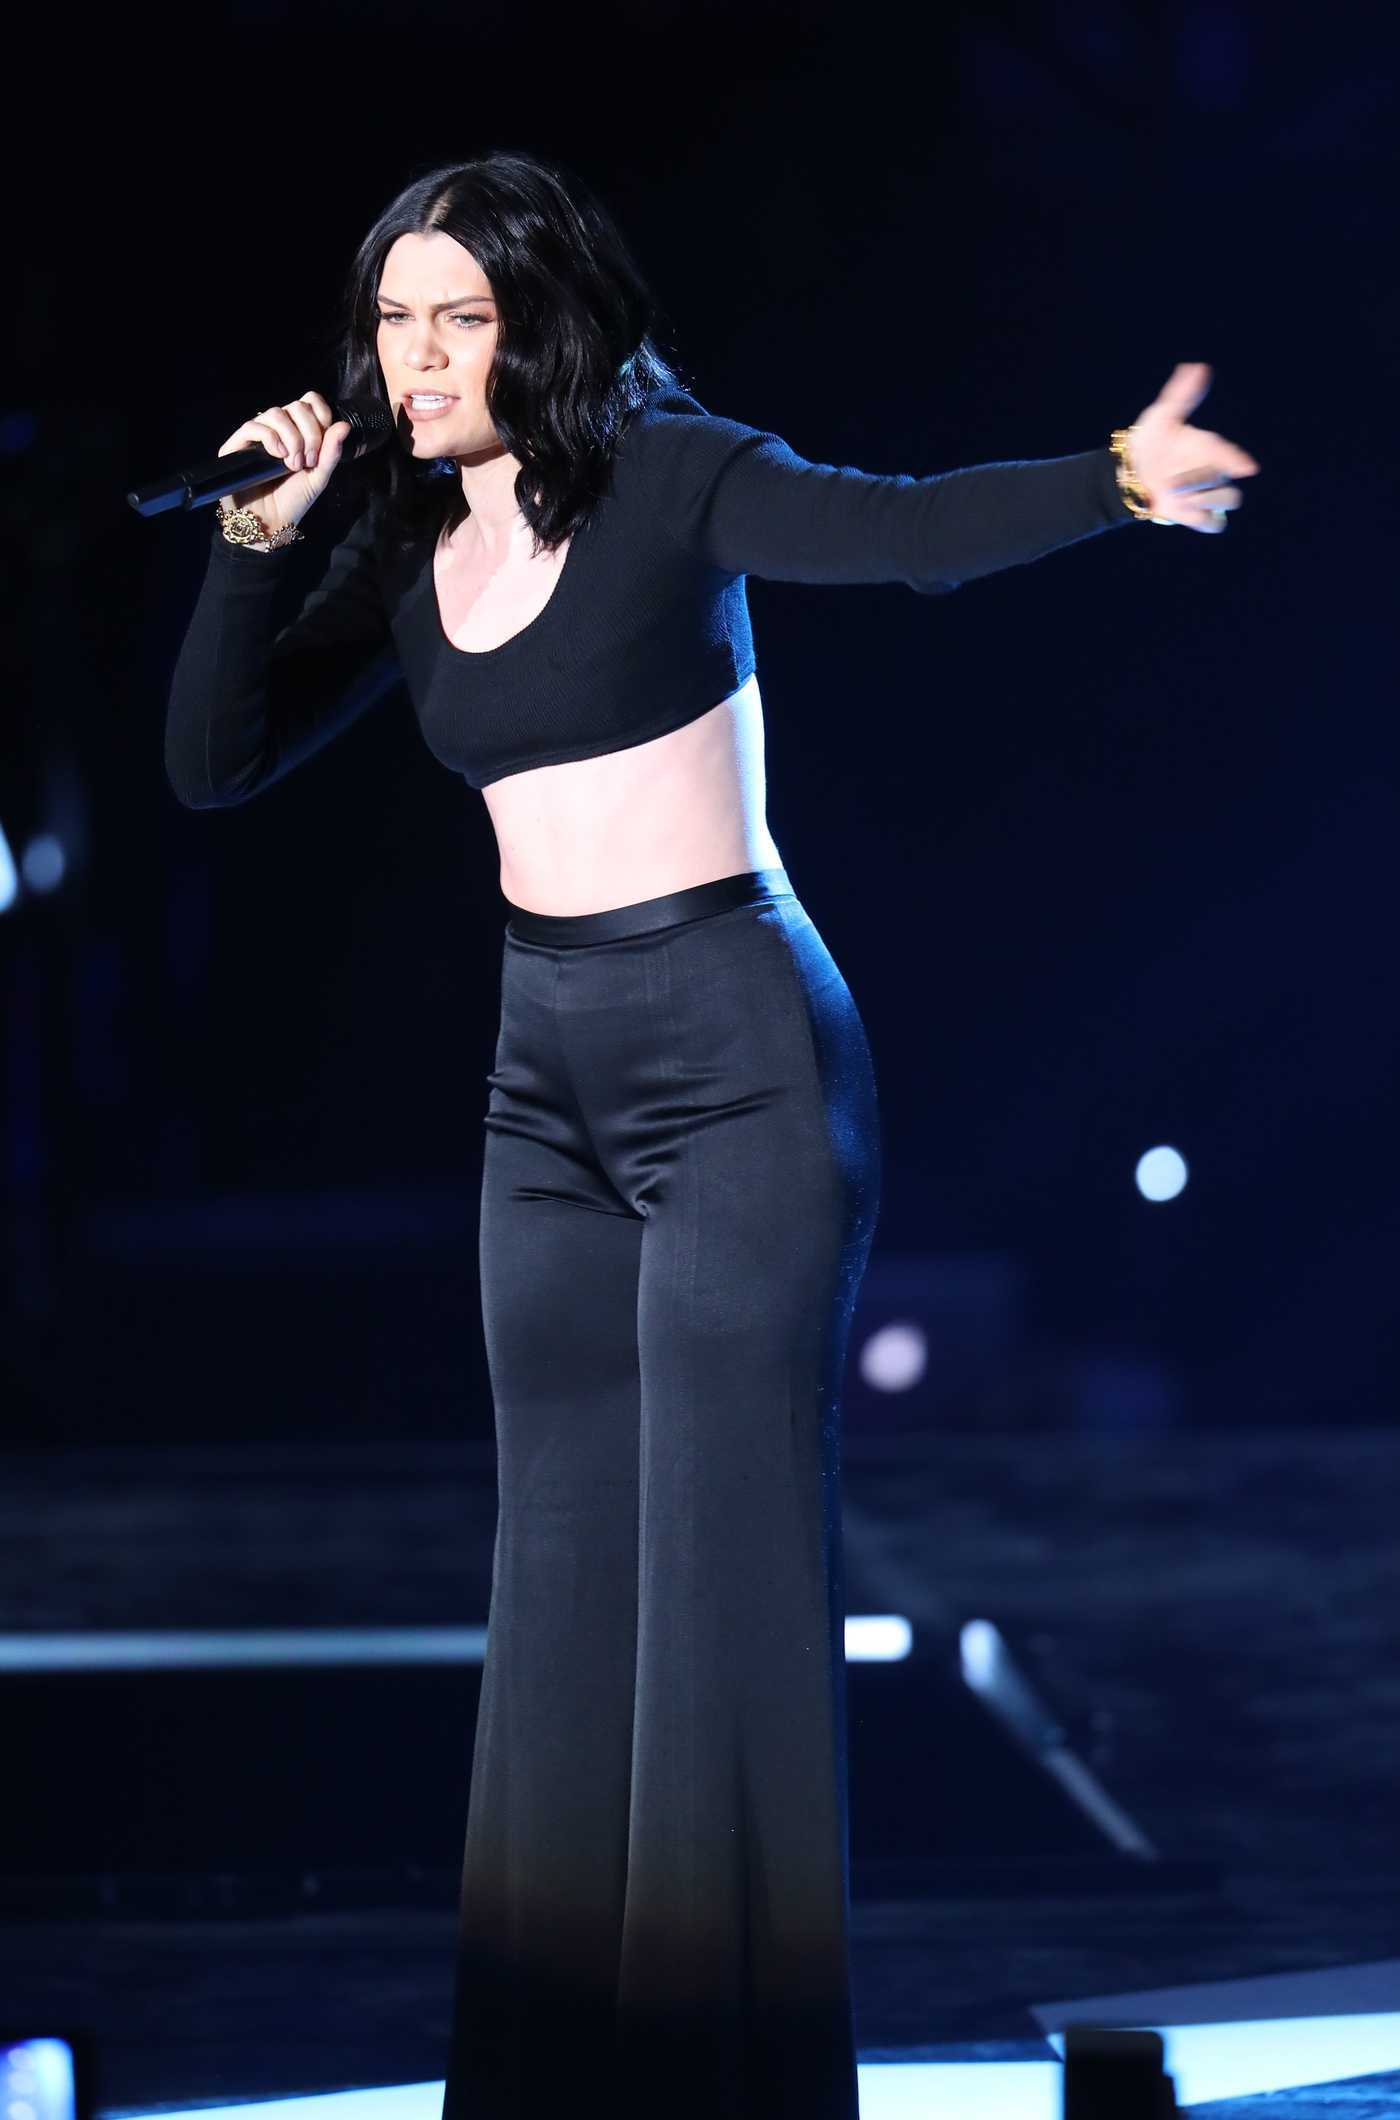 Jessie J Performs at the WE Day Show at Wembley Arena in London 03/22/2017